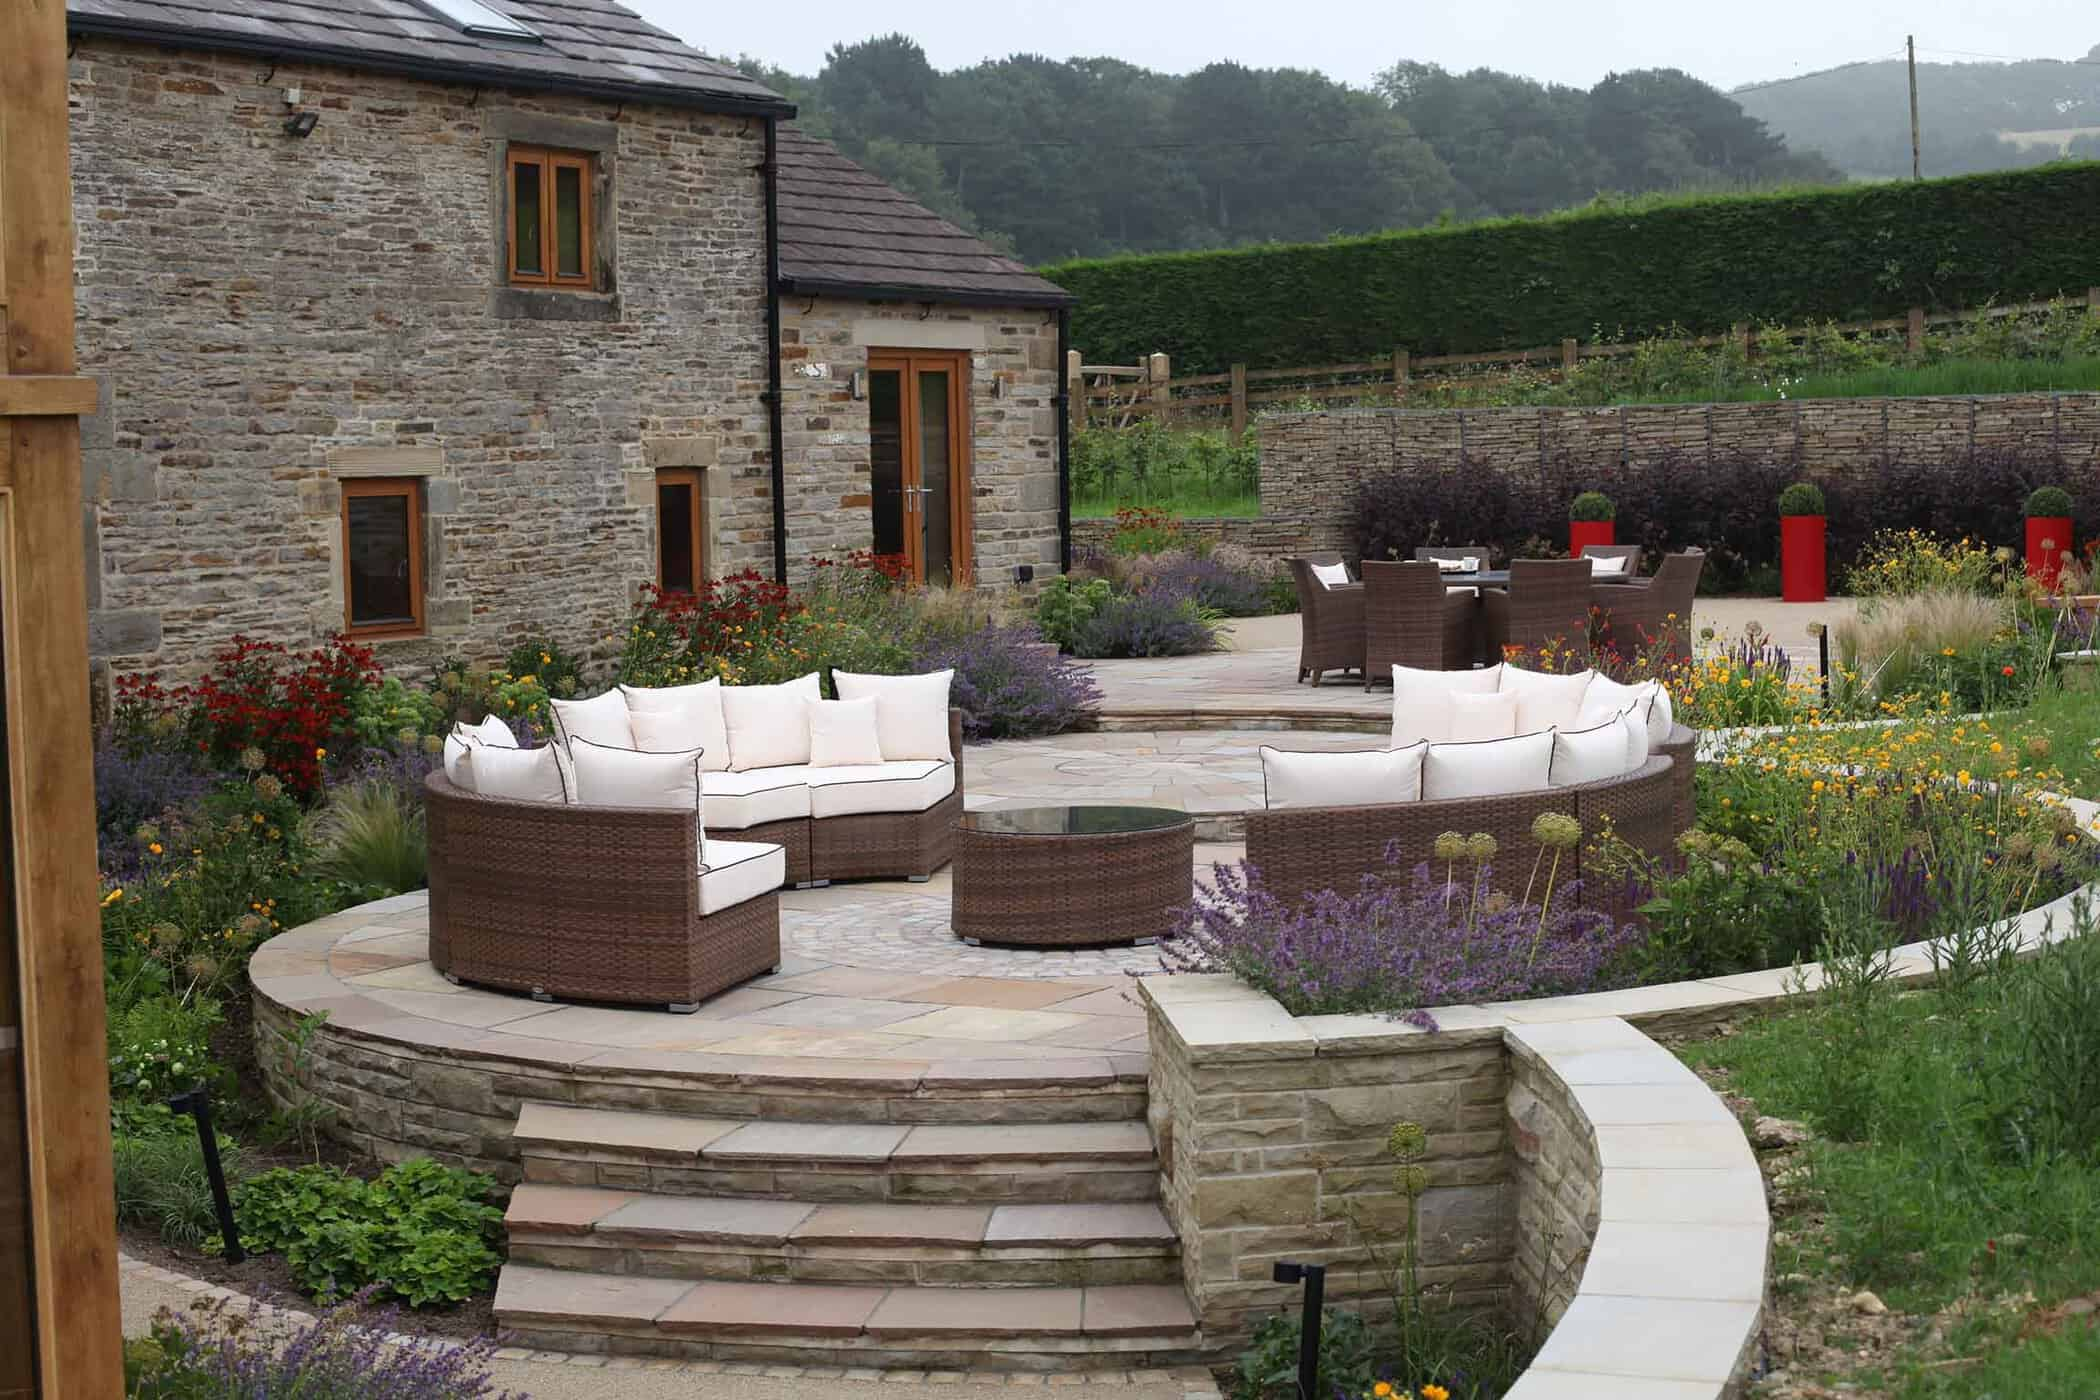 Barn Conversion bestall and co- Seating Area-Barn Conversion- Water Feature